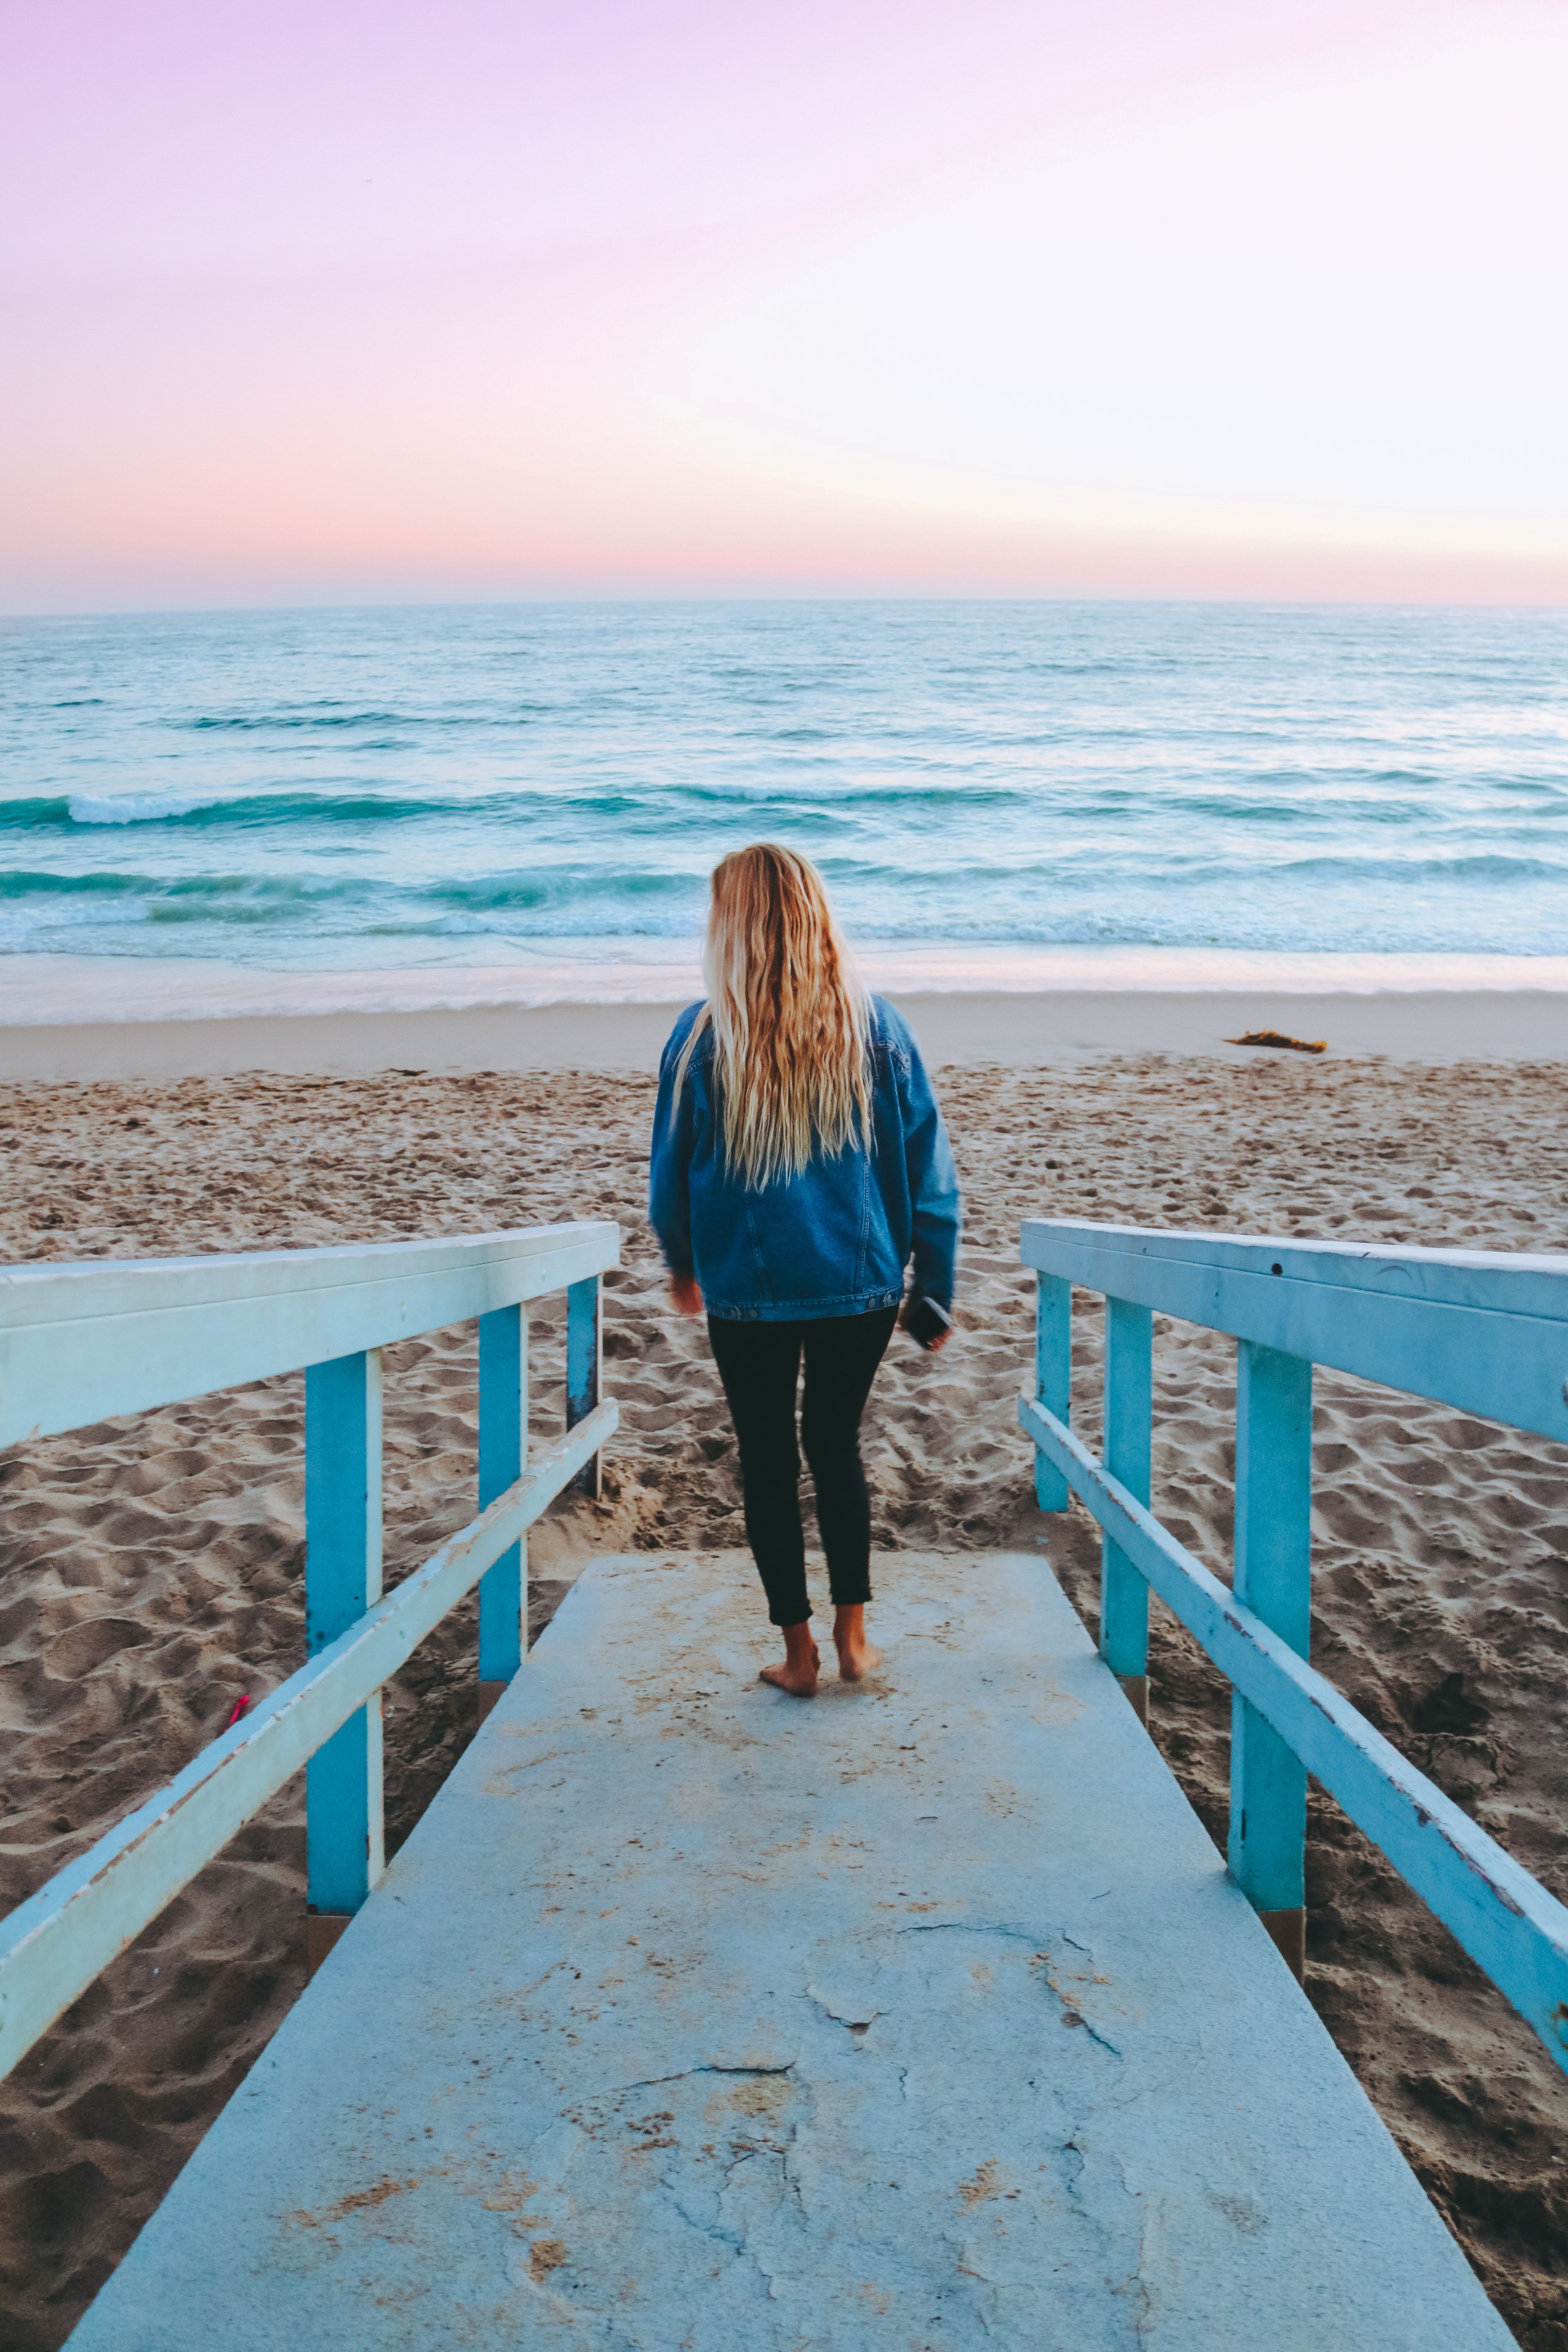 Looking For Things To Do In Manhattan Beach This Summer